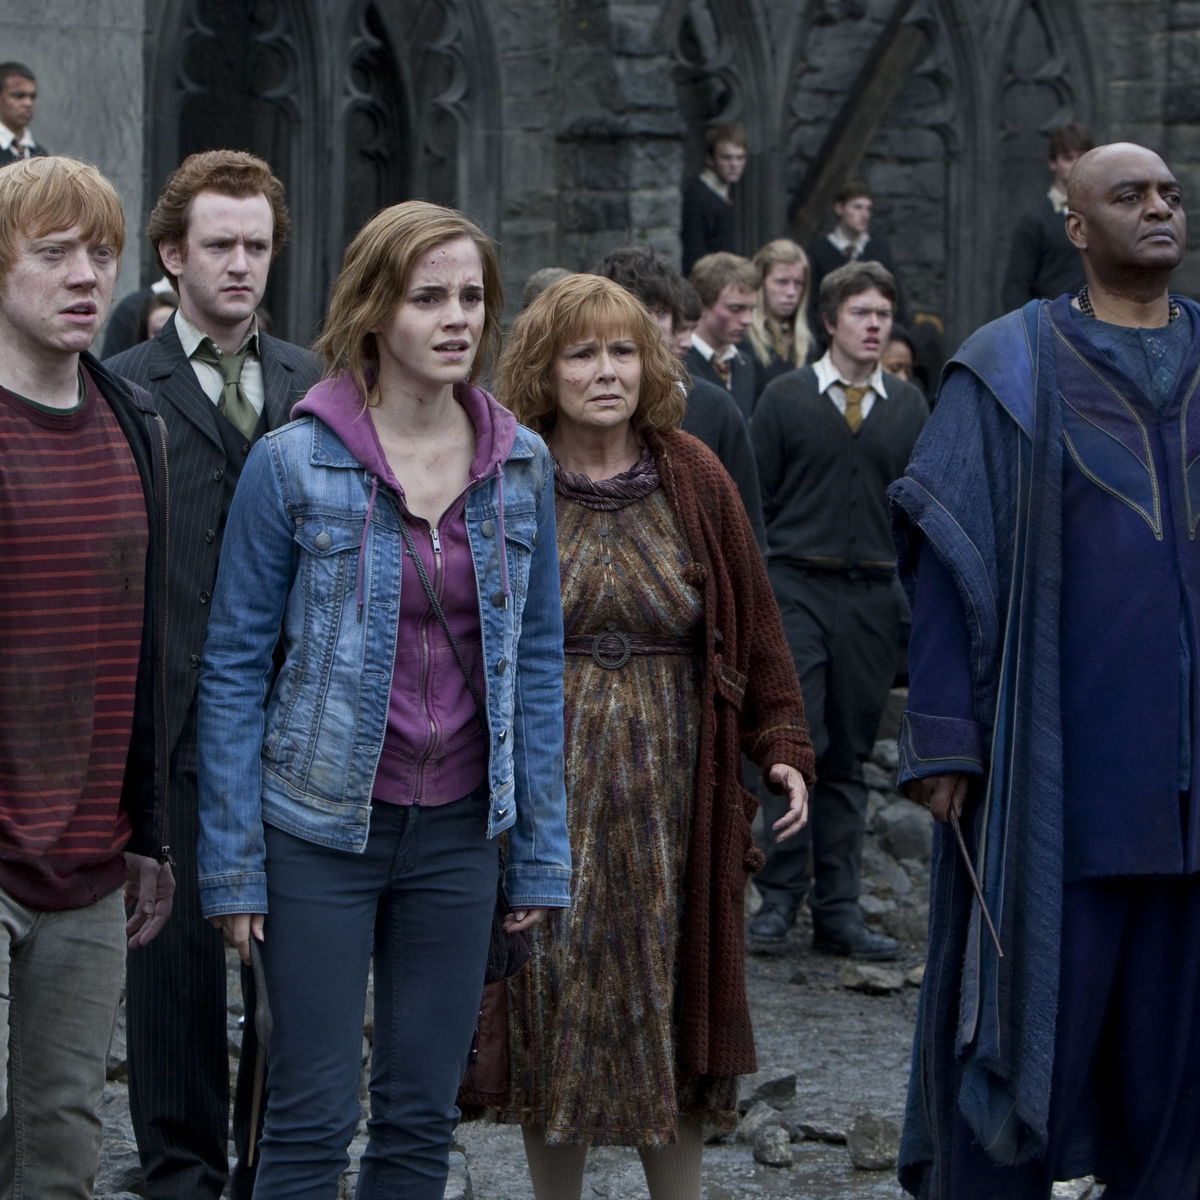 Harry Potter and the Deathly Hallows, Pt. 2 — The Battle of Hogwarts